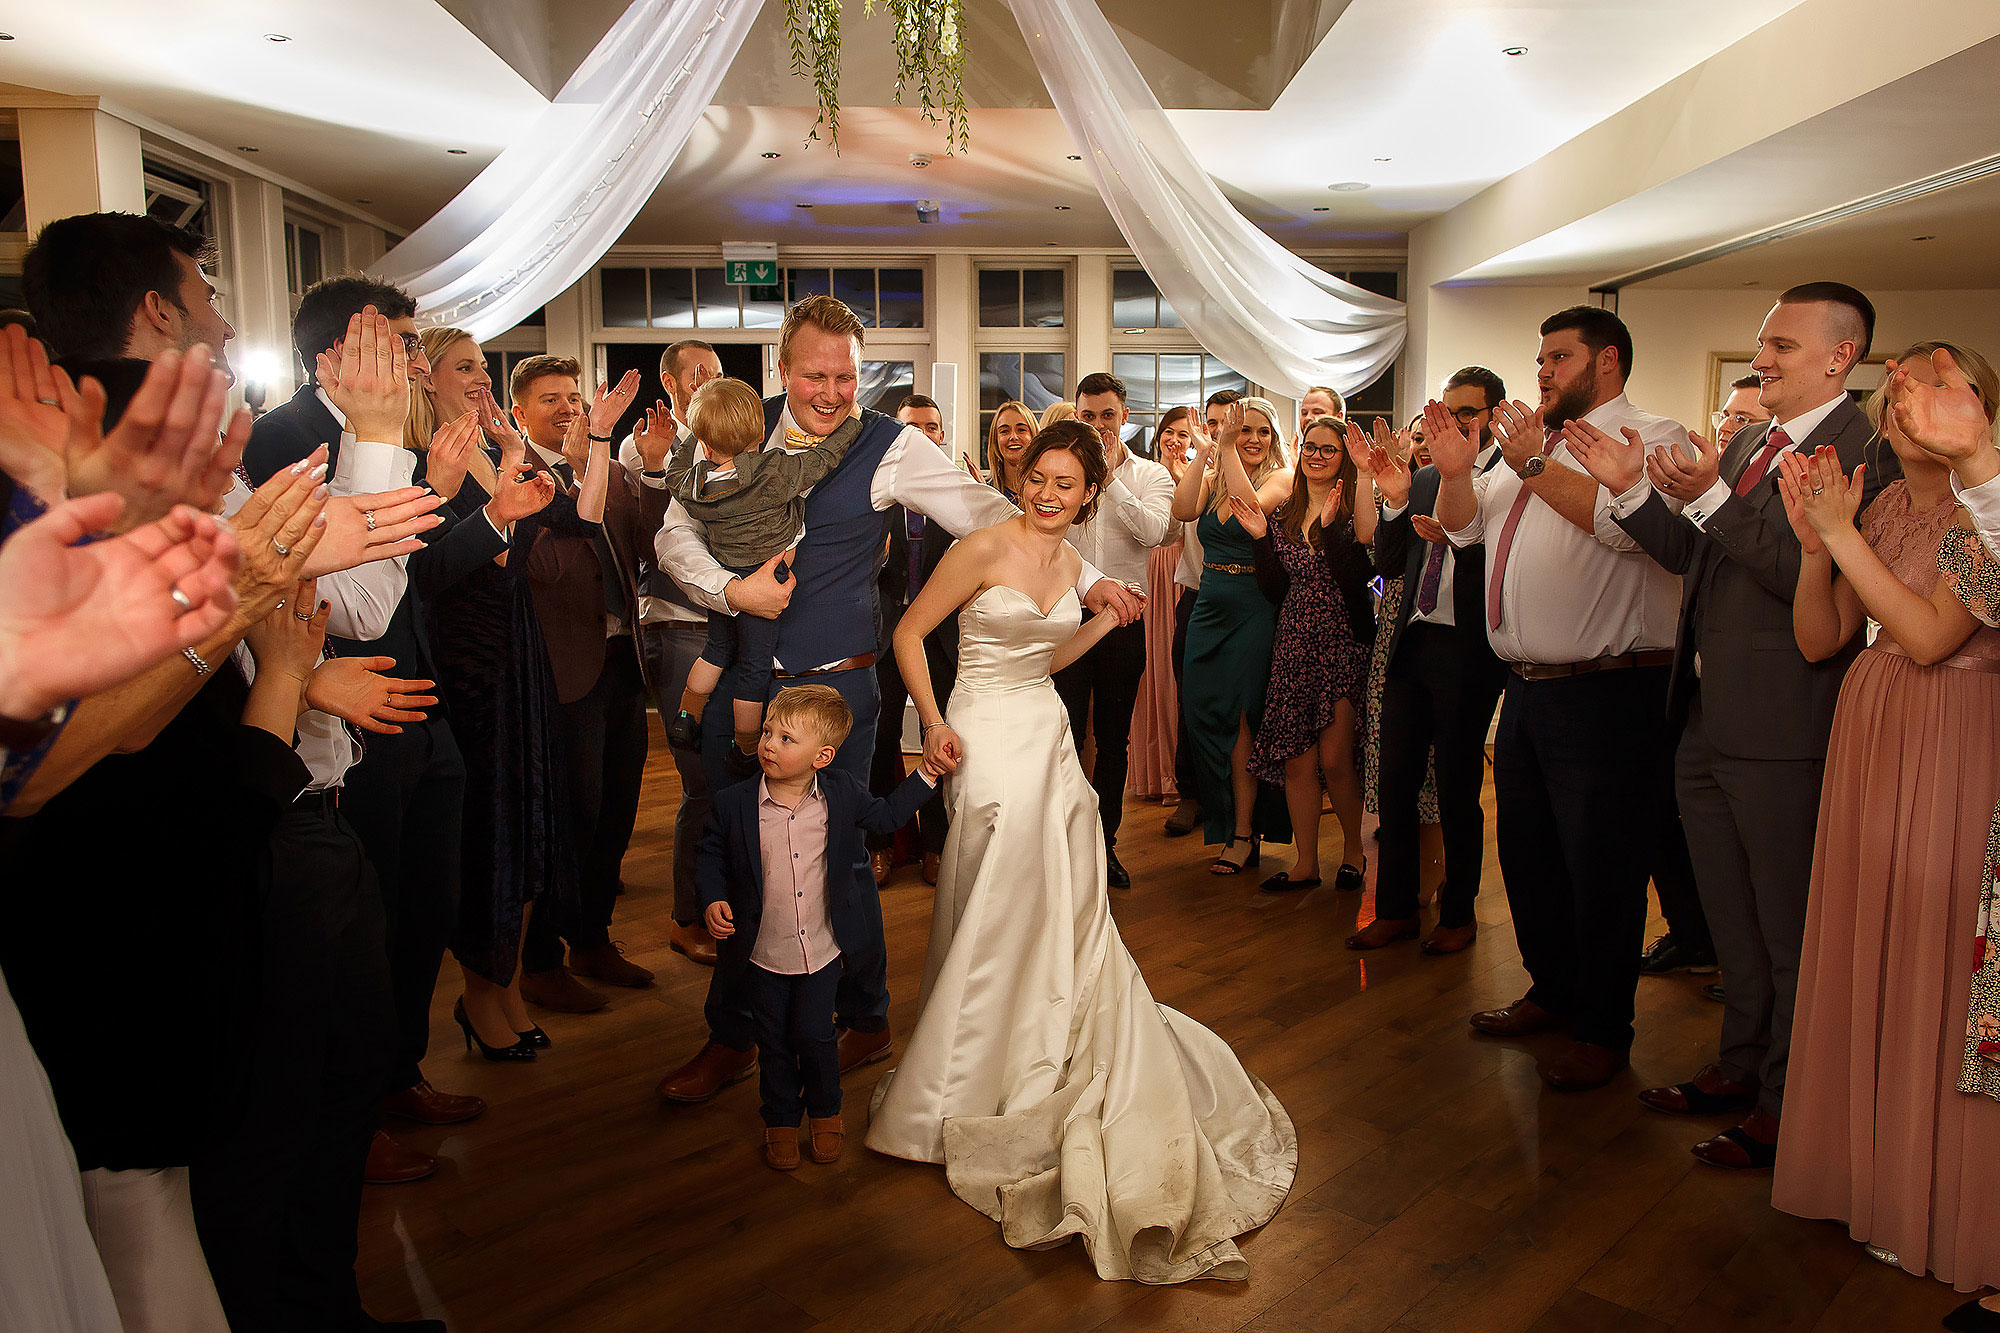 Bride and groom in the middle of the dance floor as the wedding guests surround them cheering | Mitton Hall wedding photographs by Toni Darcy Photography